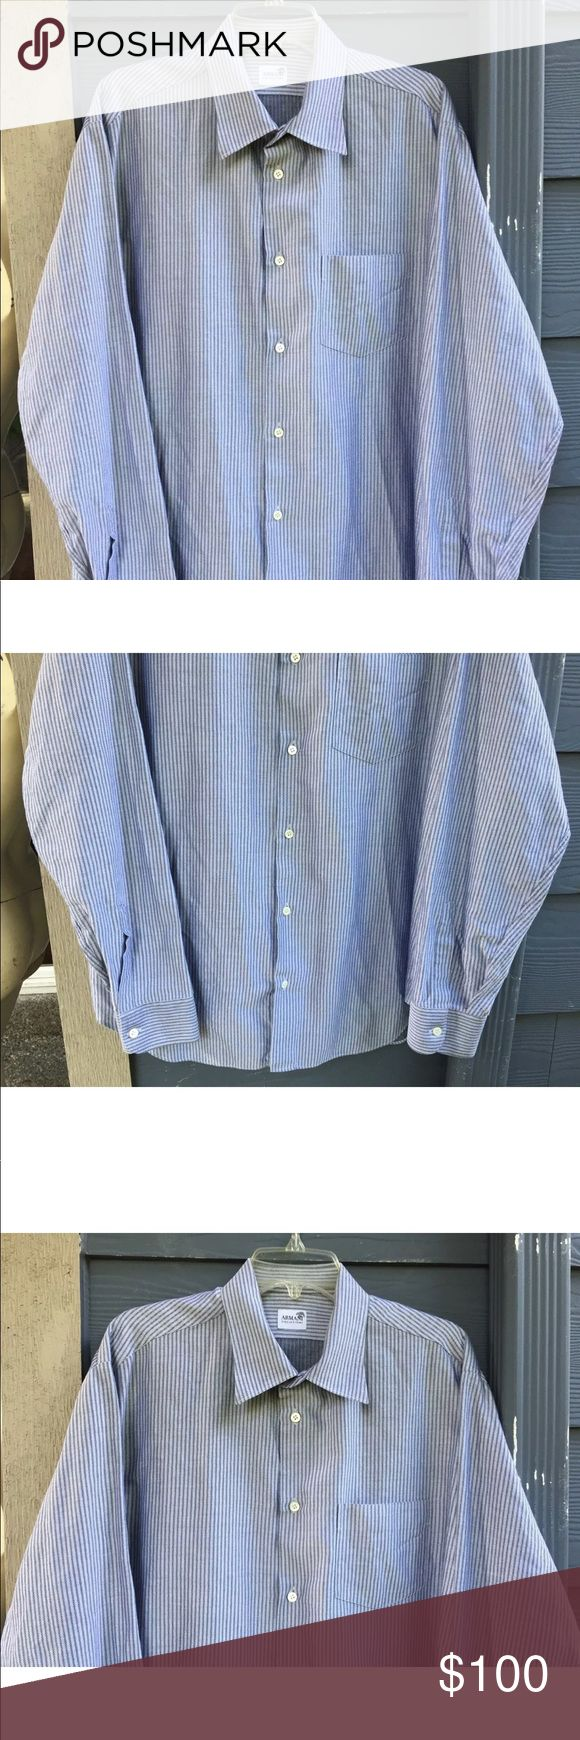 """ARMANI COLLEZIONI Men Dress Shirt Gray Sz XL R$320 ARMANI COLLEZIONI Men's Dress Shirt Gray Stripped Standard Button-Down Size XL R$320  NEW WITHOUT TAG!  Measurements laying flat approximate: Chest 24"""", waist 23 1/2"""", bottom width 24"""", length 32""""(from top of shoulder), sleeve length 25 3/4"""".  THIS GORGEOUS SHIRT HAS BEEN A DISPLAY AND TRIED ON AND OVERALL IN GREAT CONDITION!  NOTE:  PLEASE REVIEW MEASUREMENTS CAREFULLY BEFORE PURCHASING THIS ITEM SINCE SIZES SOME TIMES ARE DIFFERENT FROM…"""